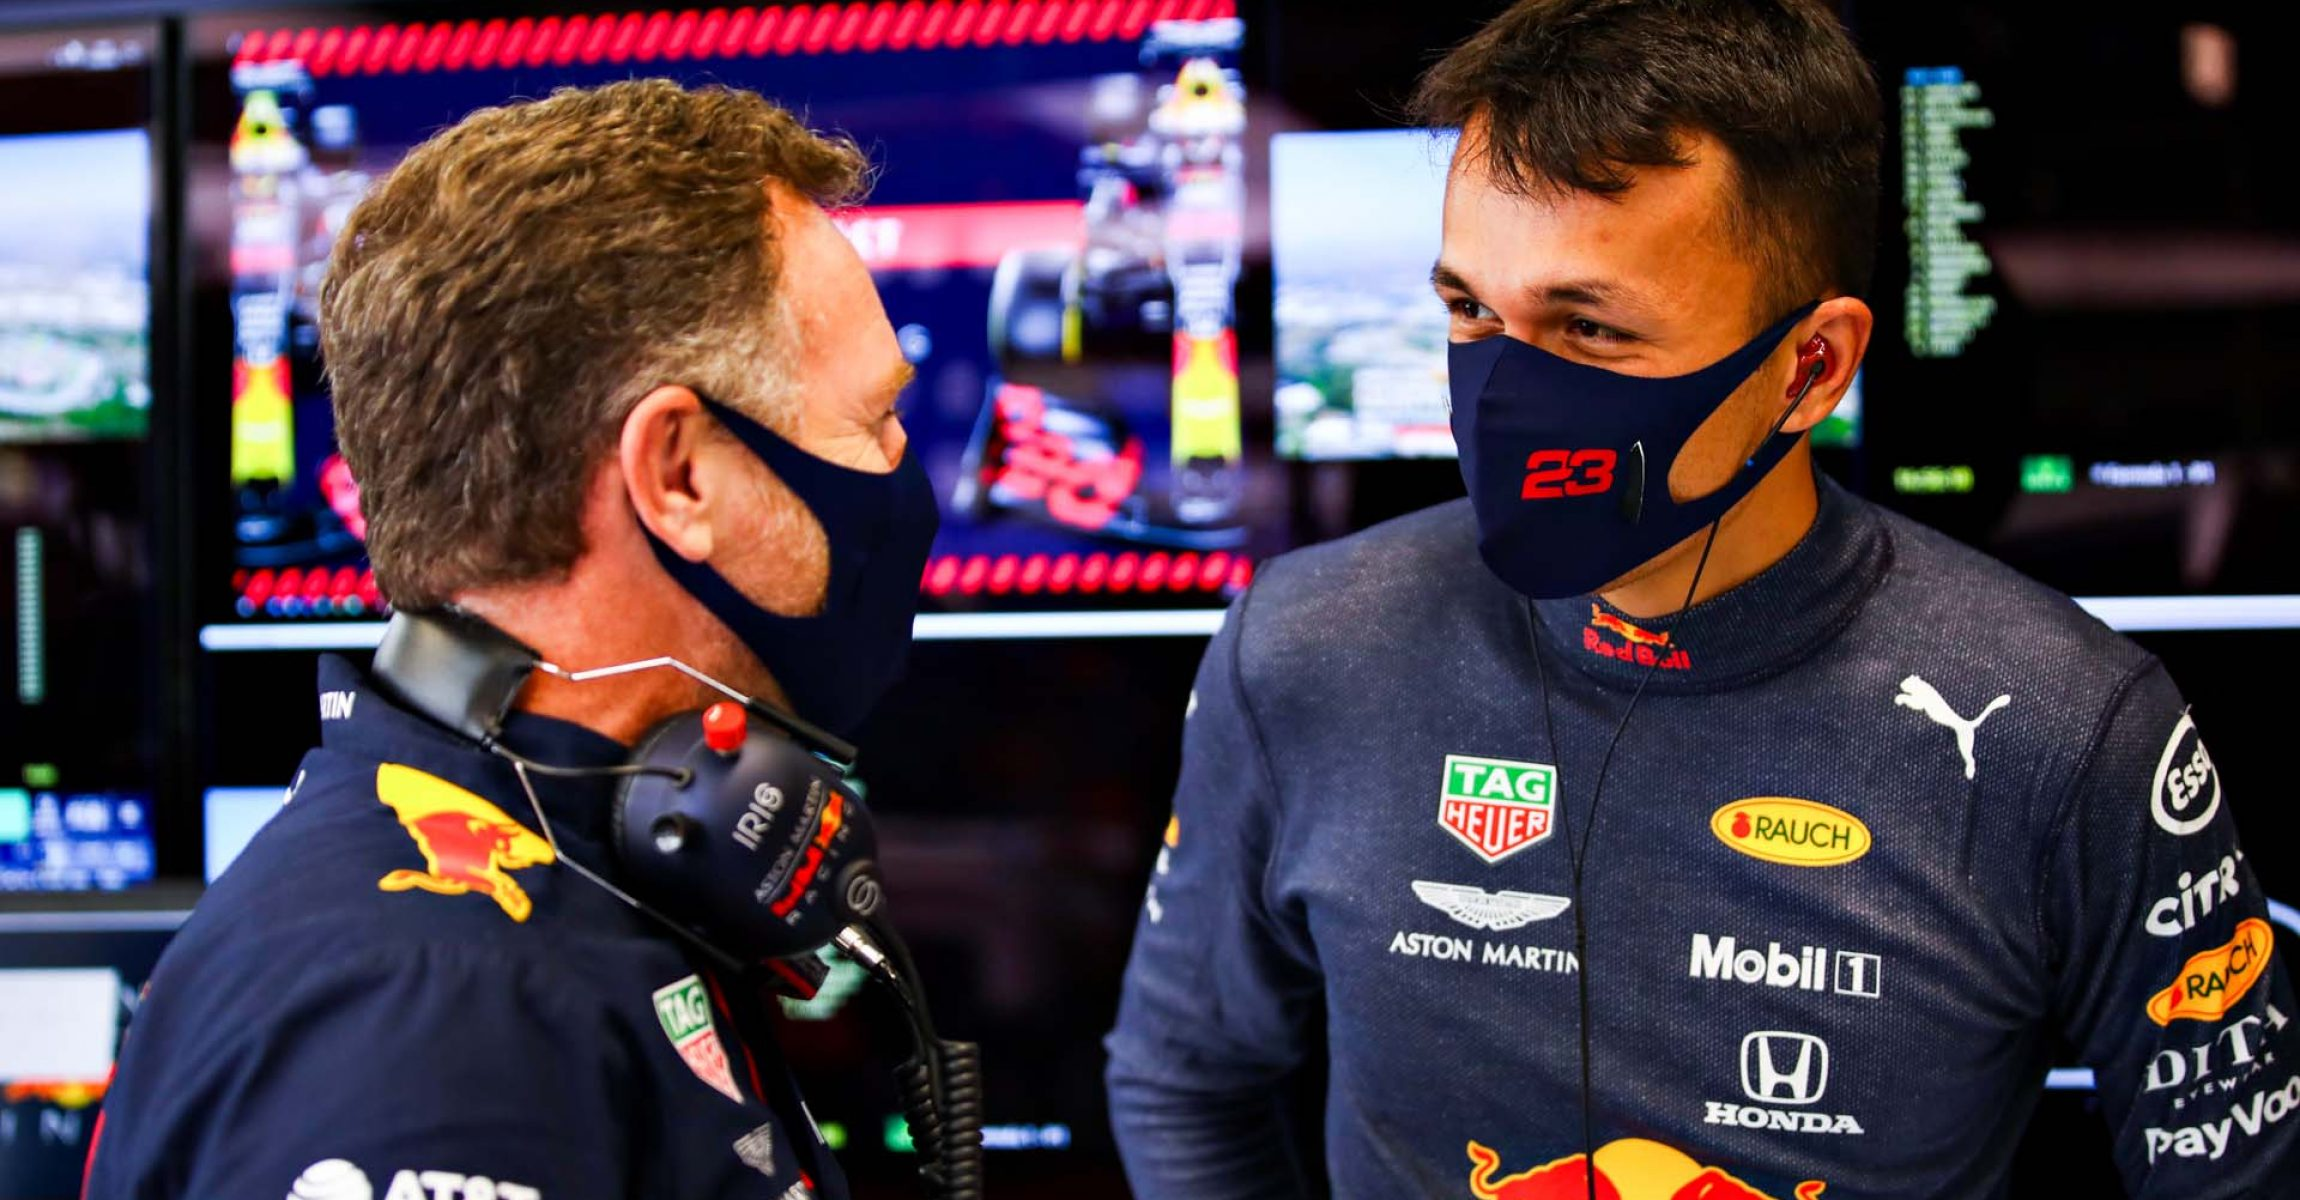 BARCELONA, SPAIN - AUGUST 15: Red Bull Racing Team Principal Christian Horner talks to Alexander Albon of Thailand and Red Bull Racing i during qualifying for the F1 Grand Prix of Spain at Circuit de Barcelona-Catalunya on August 15, 2020 in Barcelona, Spain. (Photo by Mark Thompson/Getty Images)